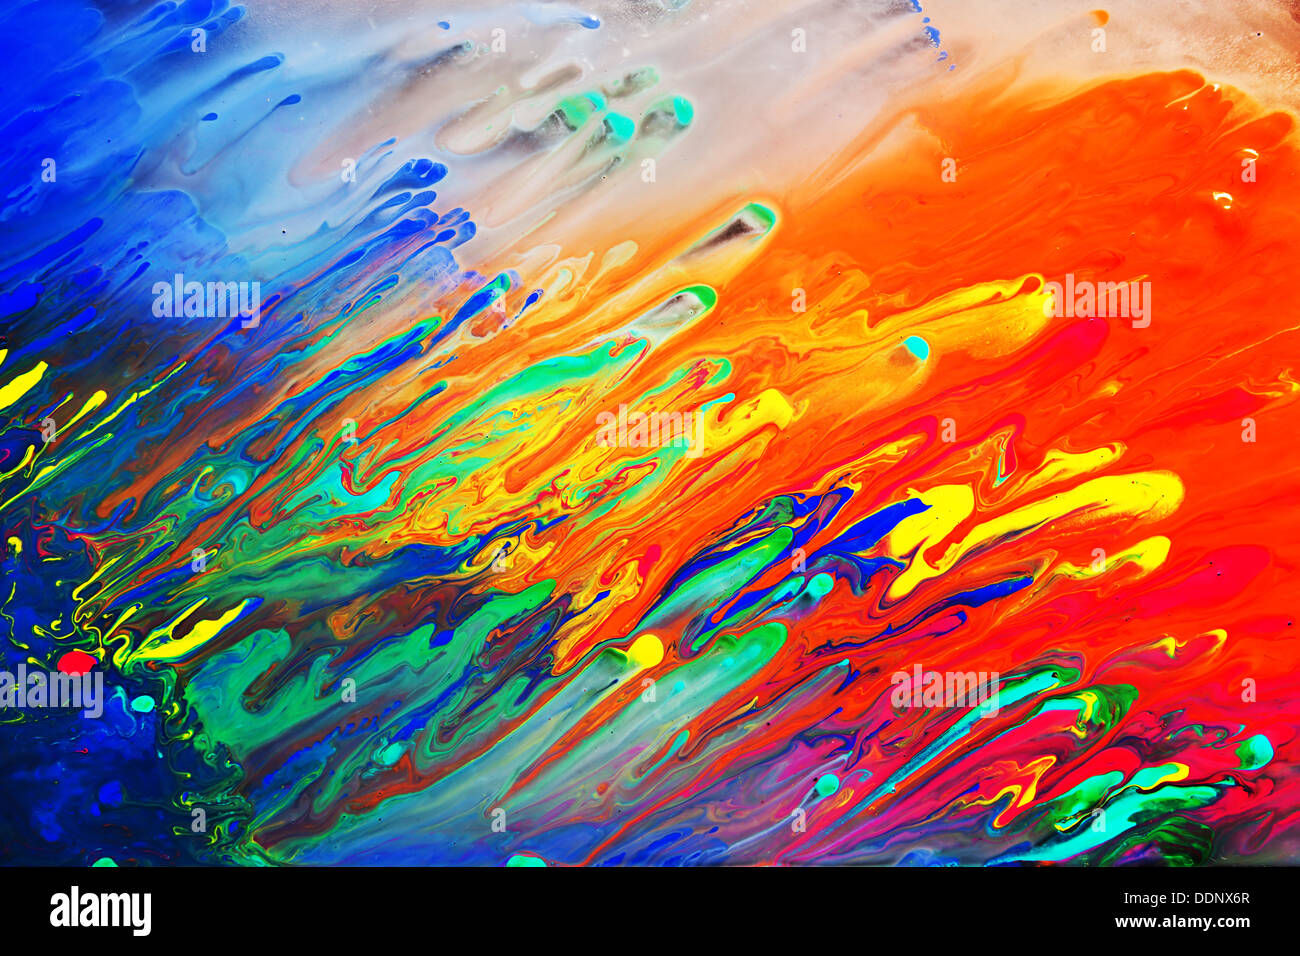 Bright colorful abstract art peinture historique close up Photo Stock